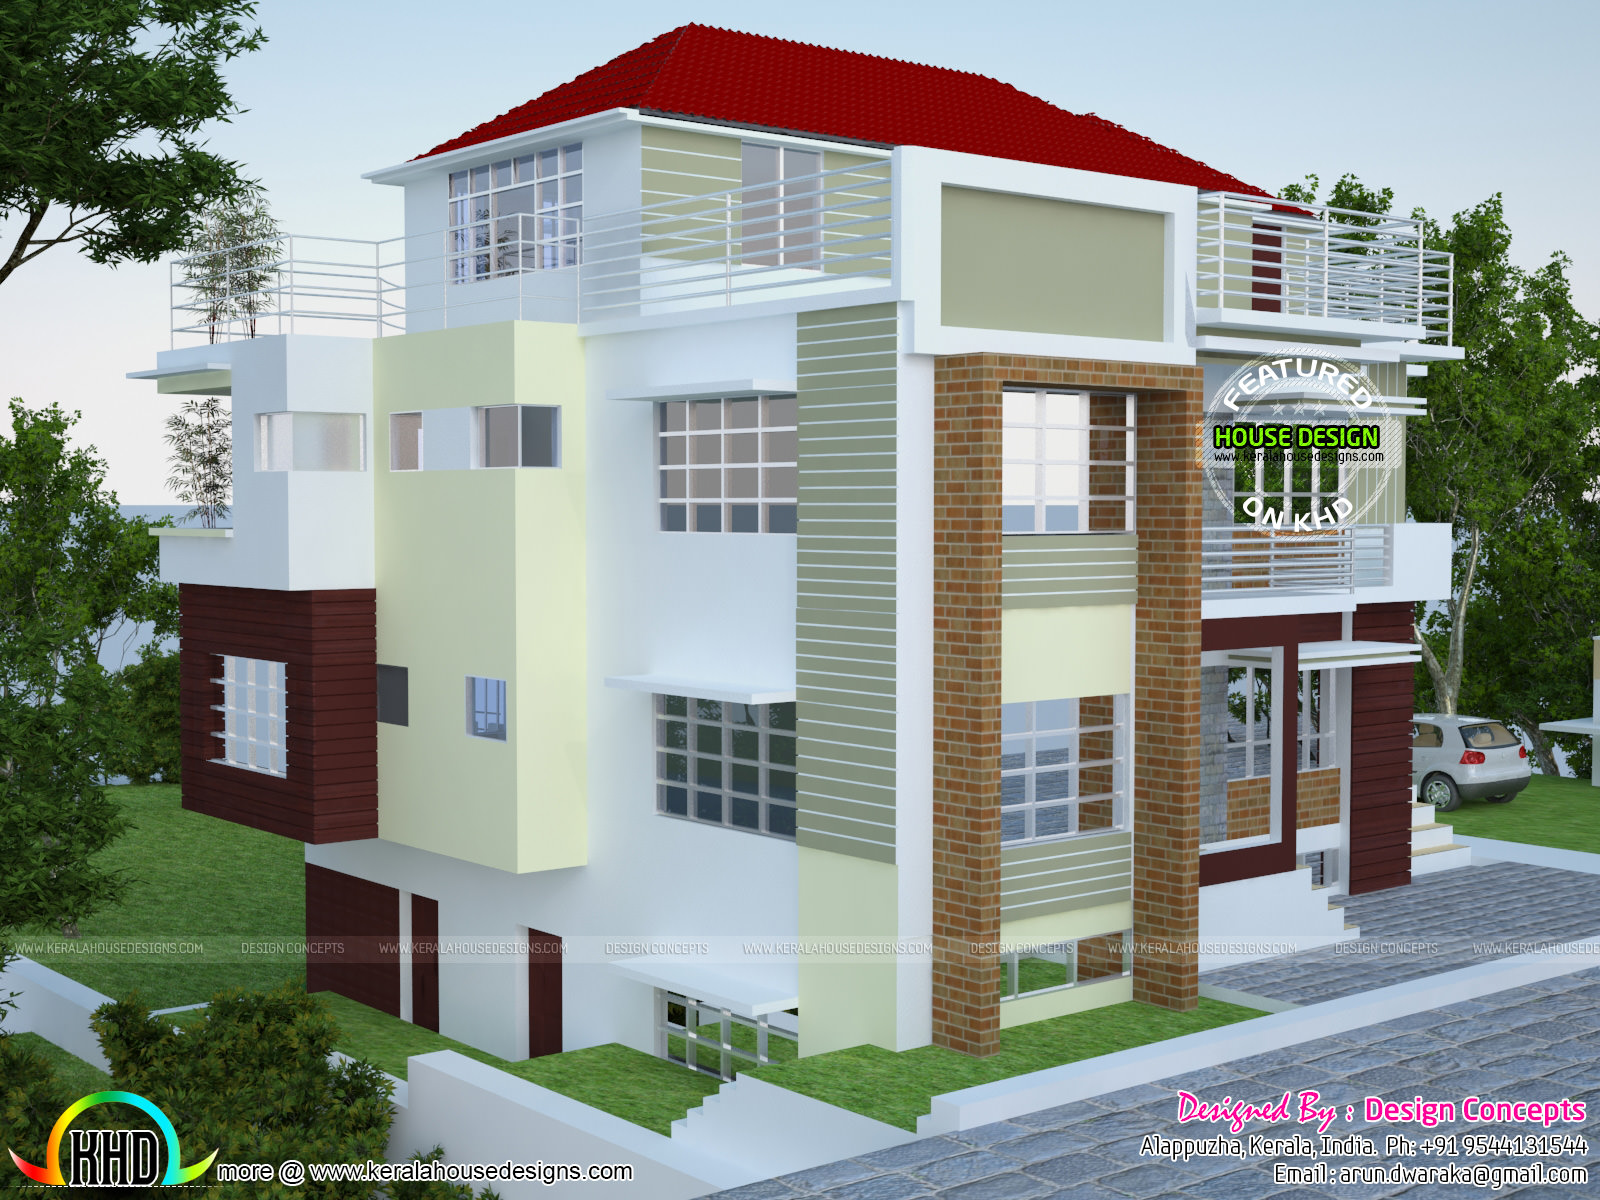 multi family 4 plex home plan kerala home design and floor plans multi family 4 plex home plan